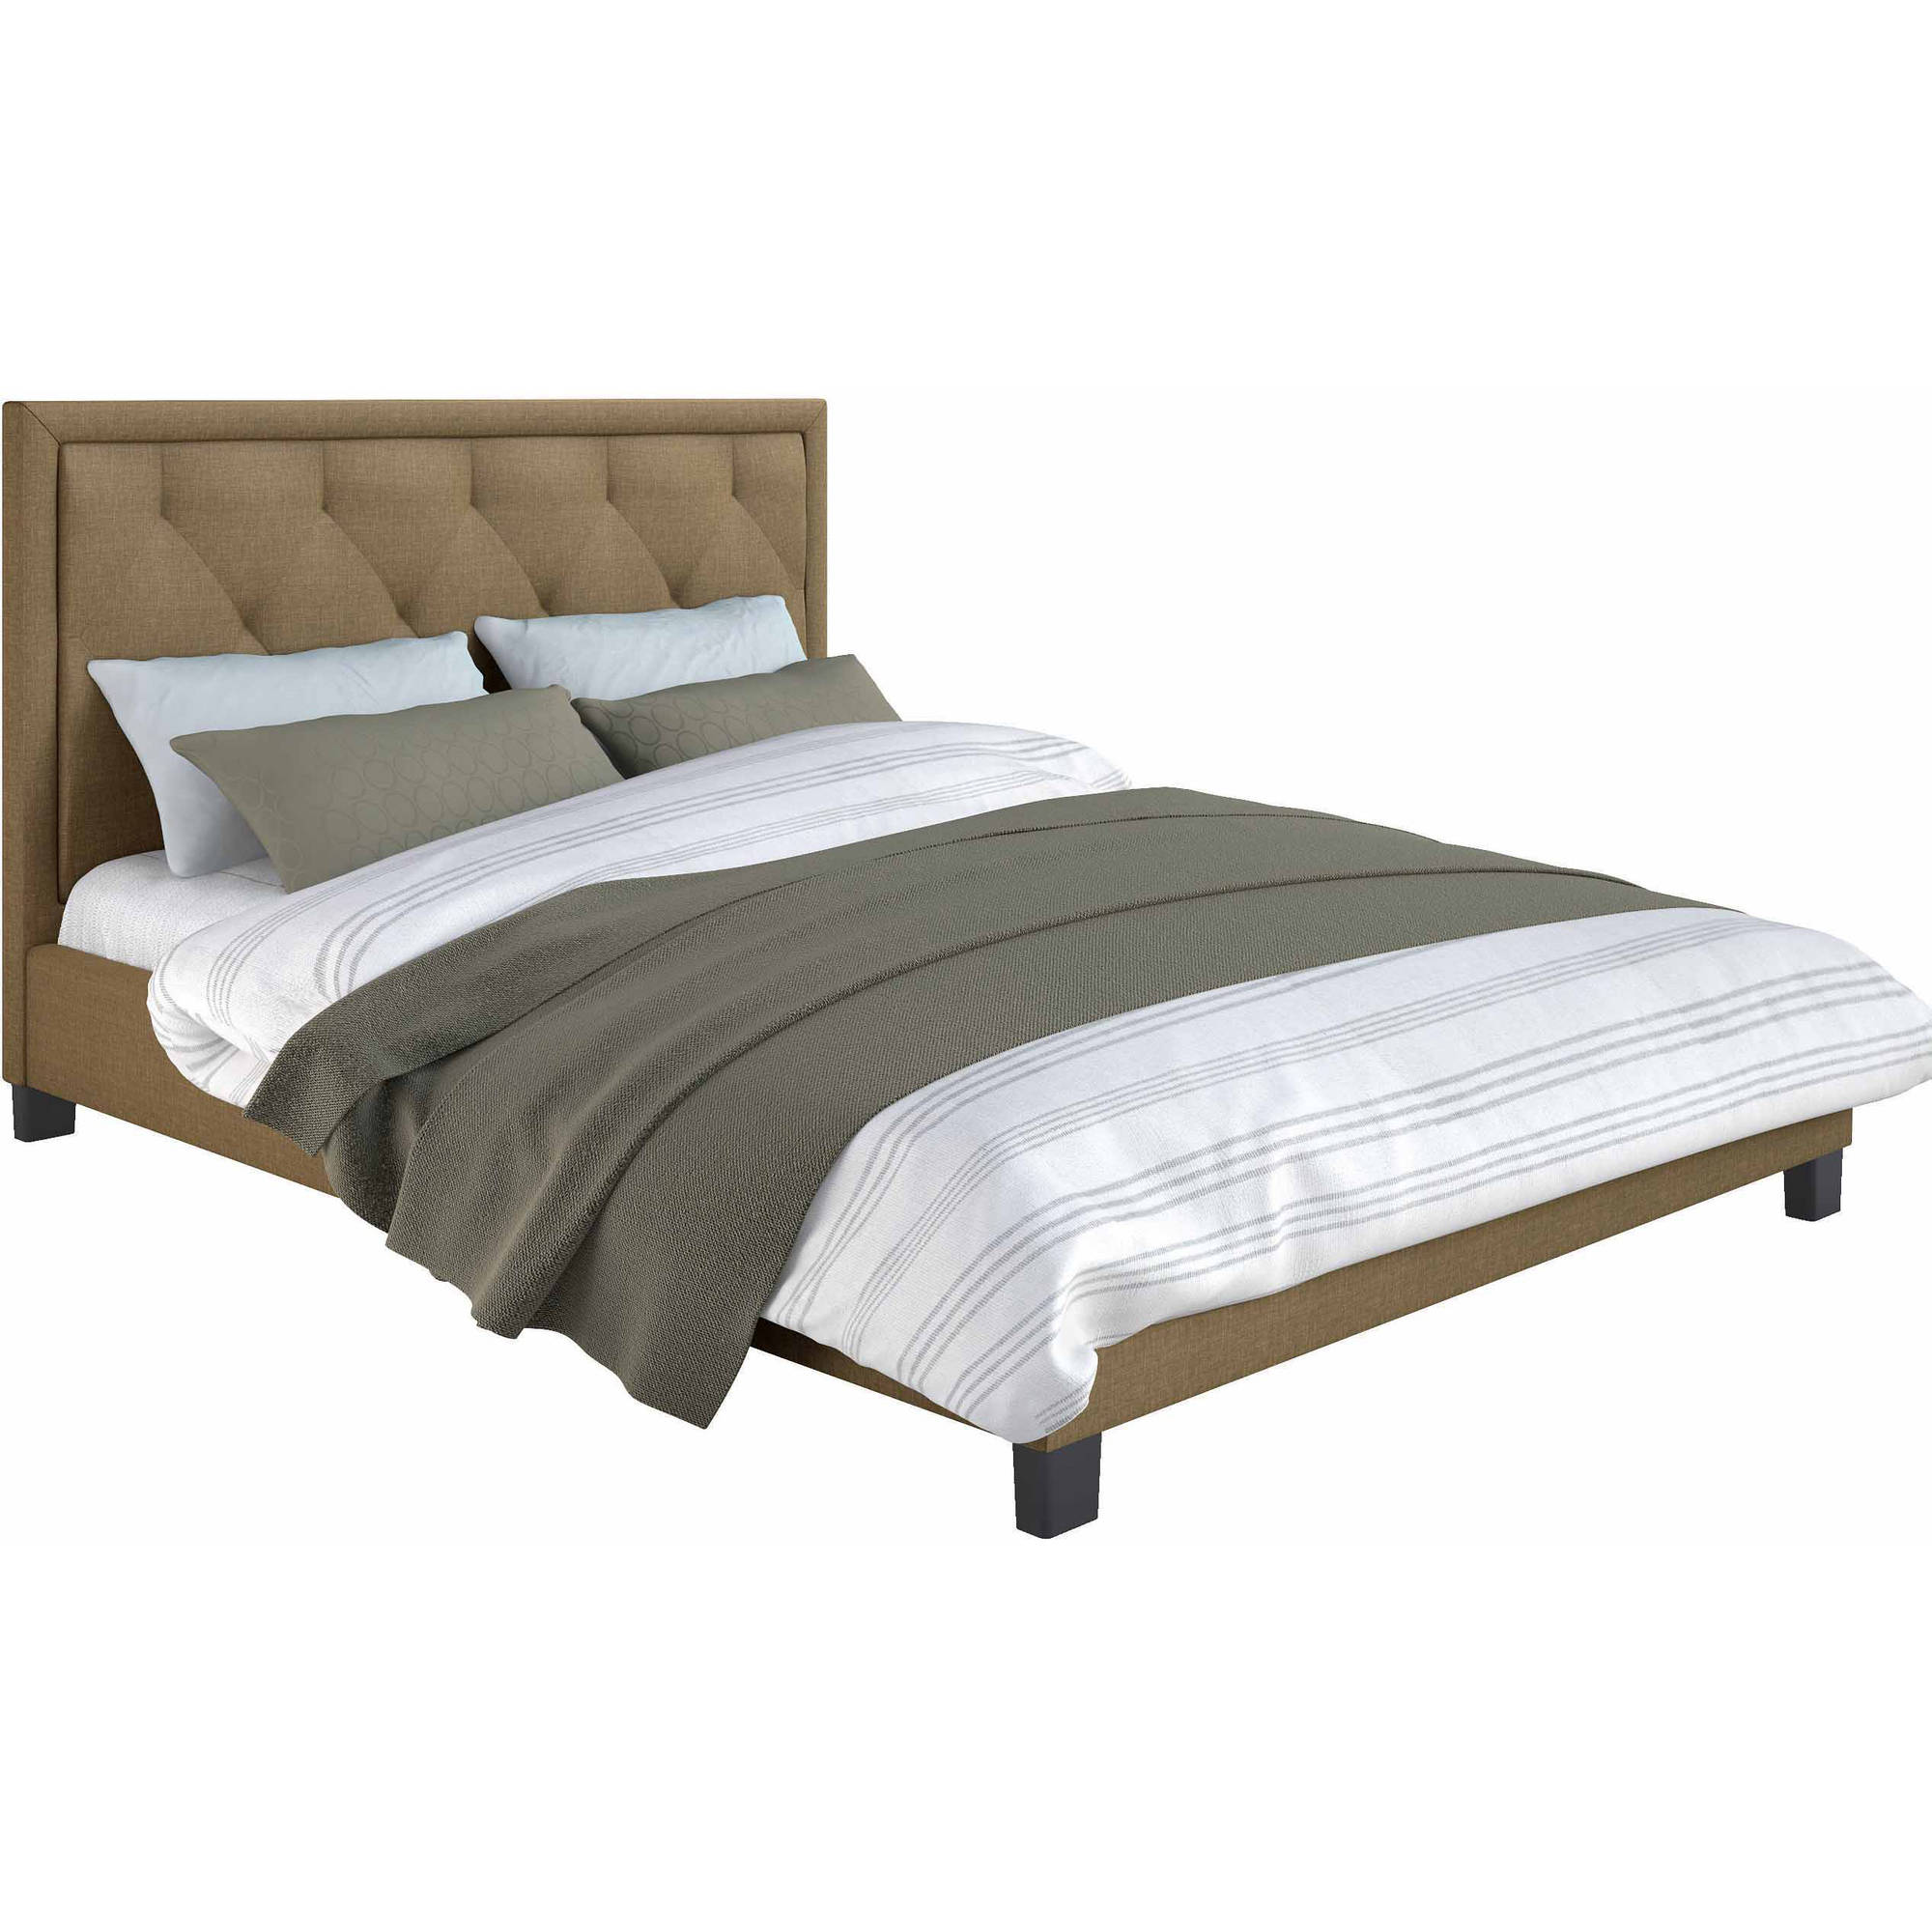 CorLiving Fairfield Diamond Tufted Upholstered Queen Bed